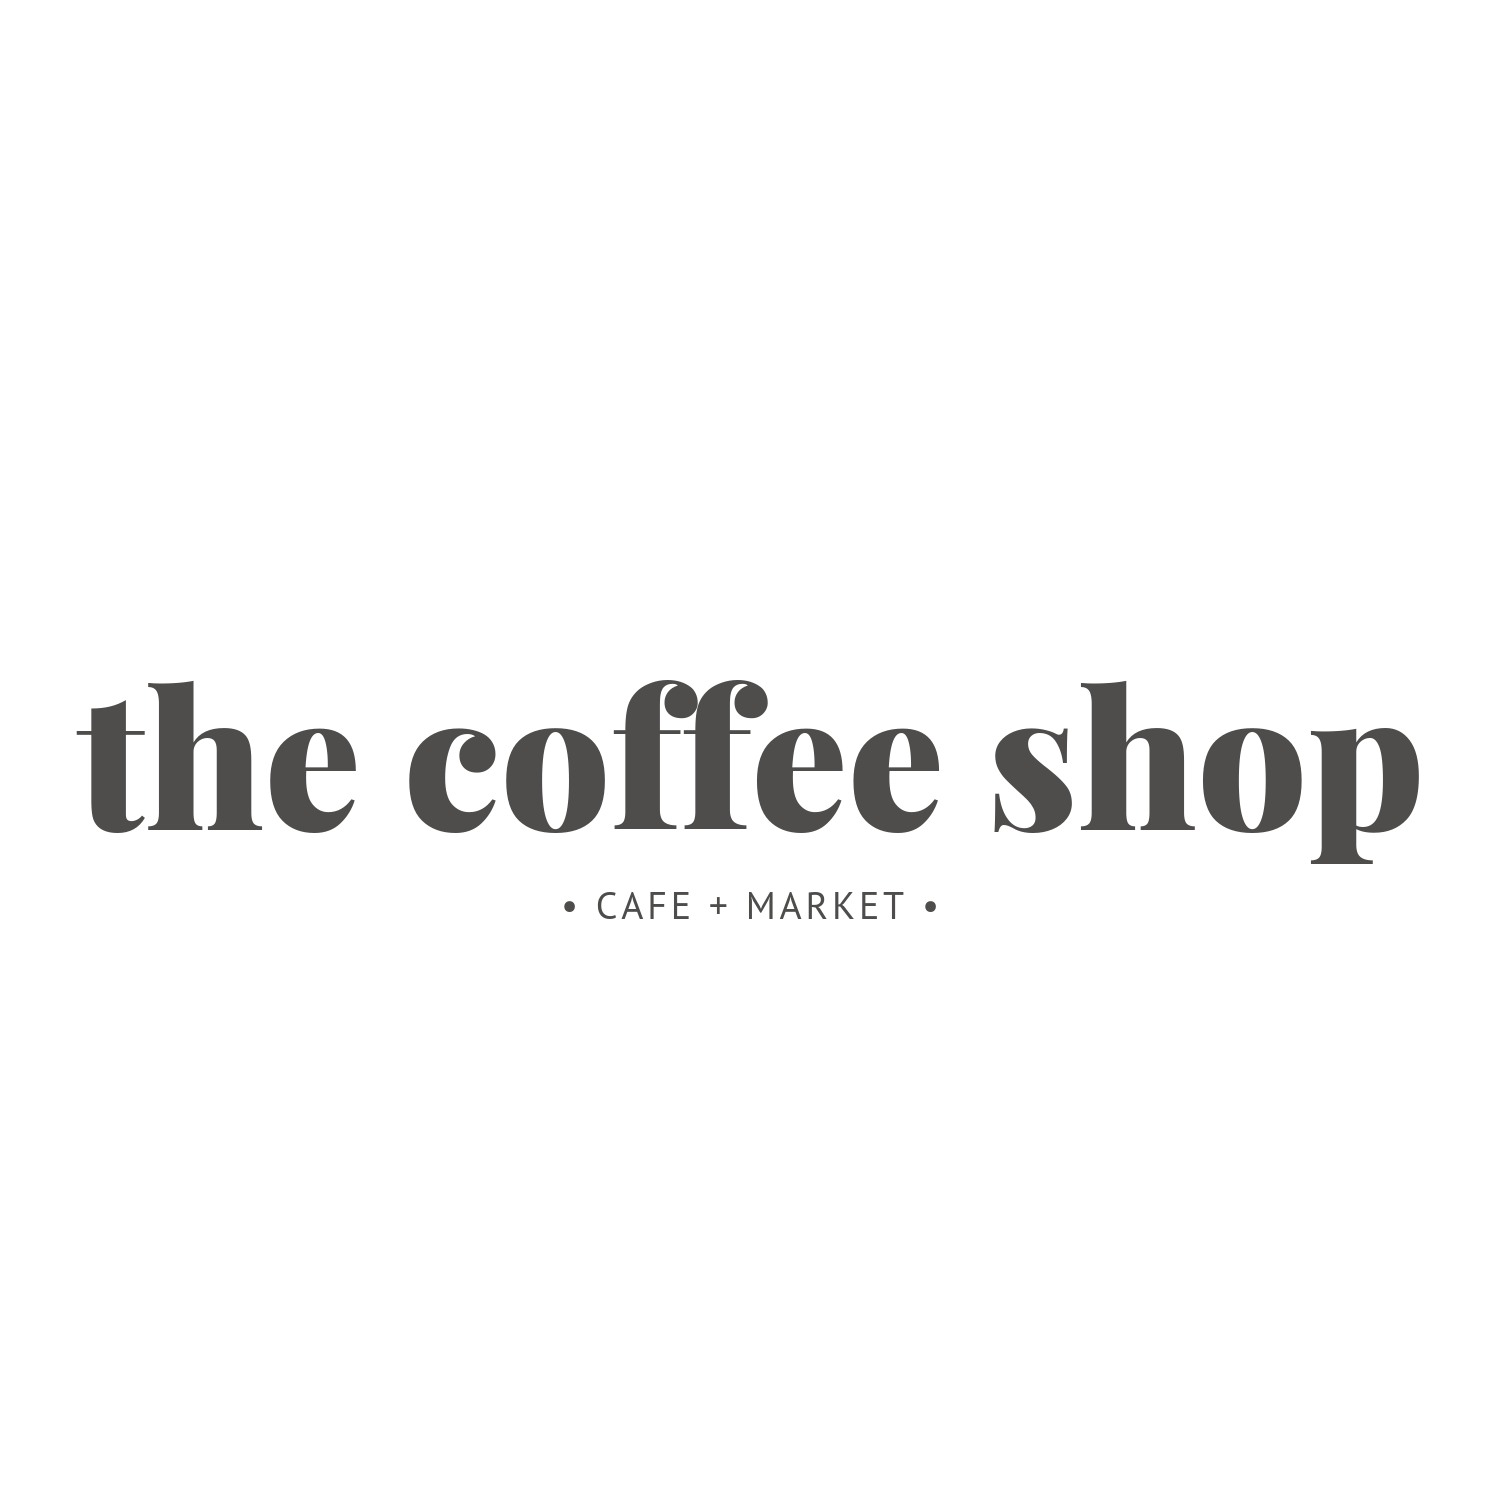 THE COFFEE SHOP LOGO.png